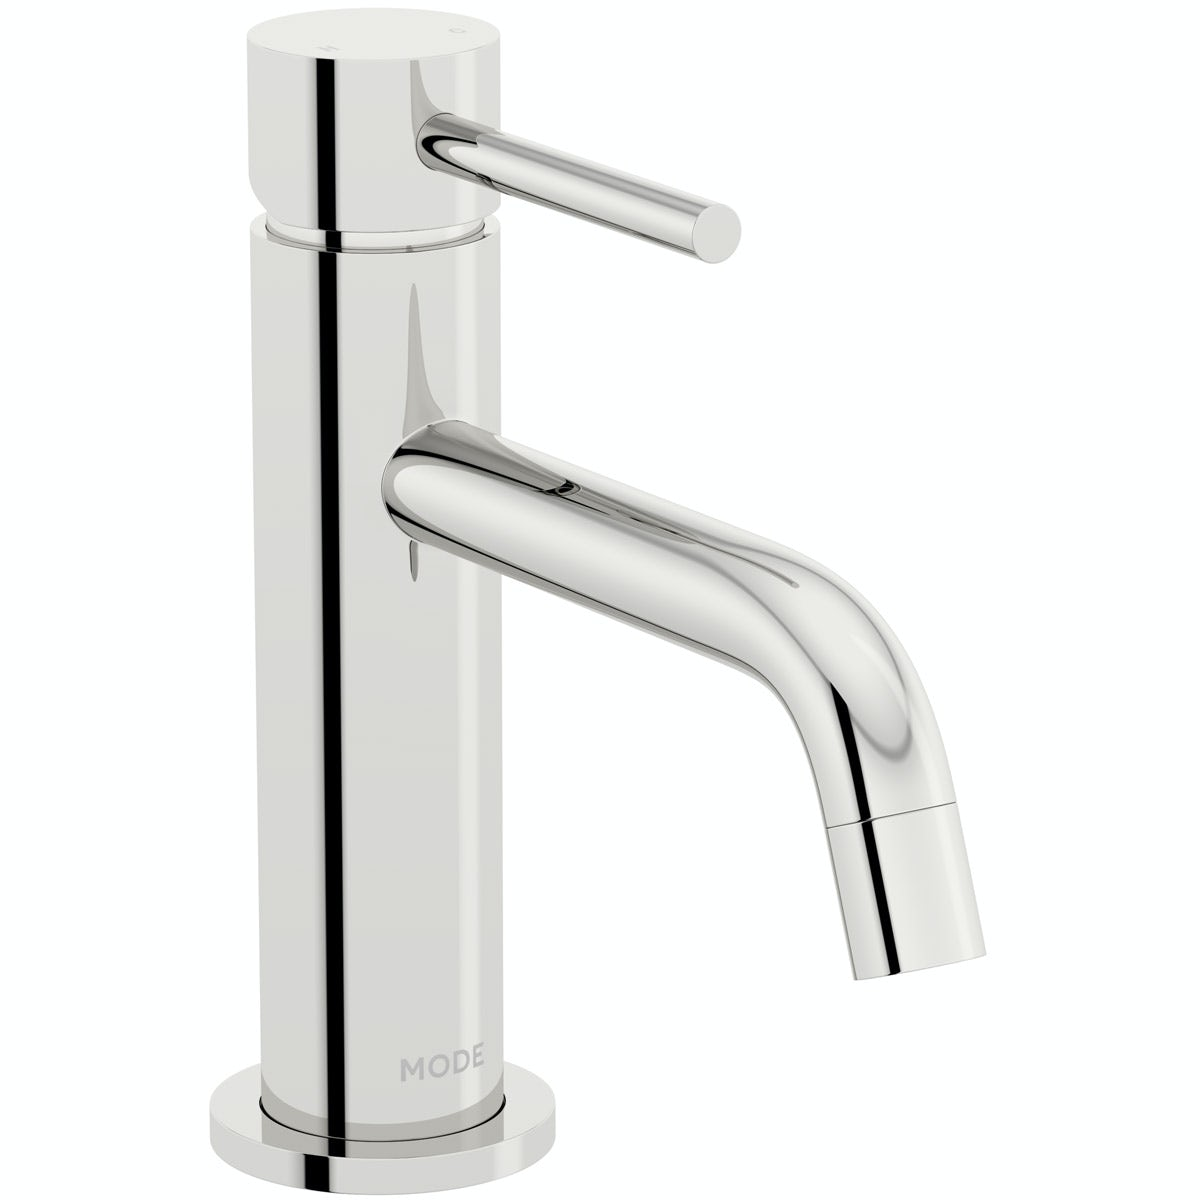 Mode Spencer round basin mixer tap